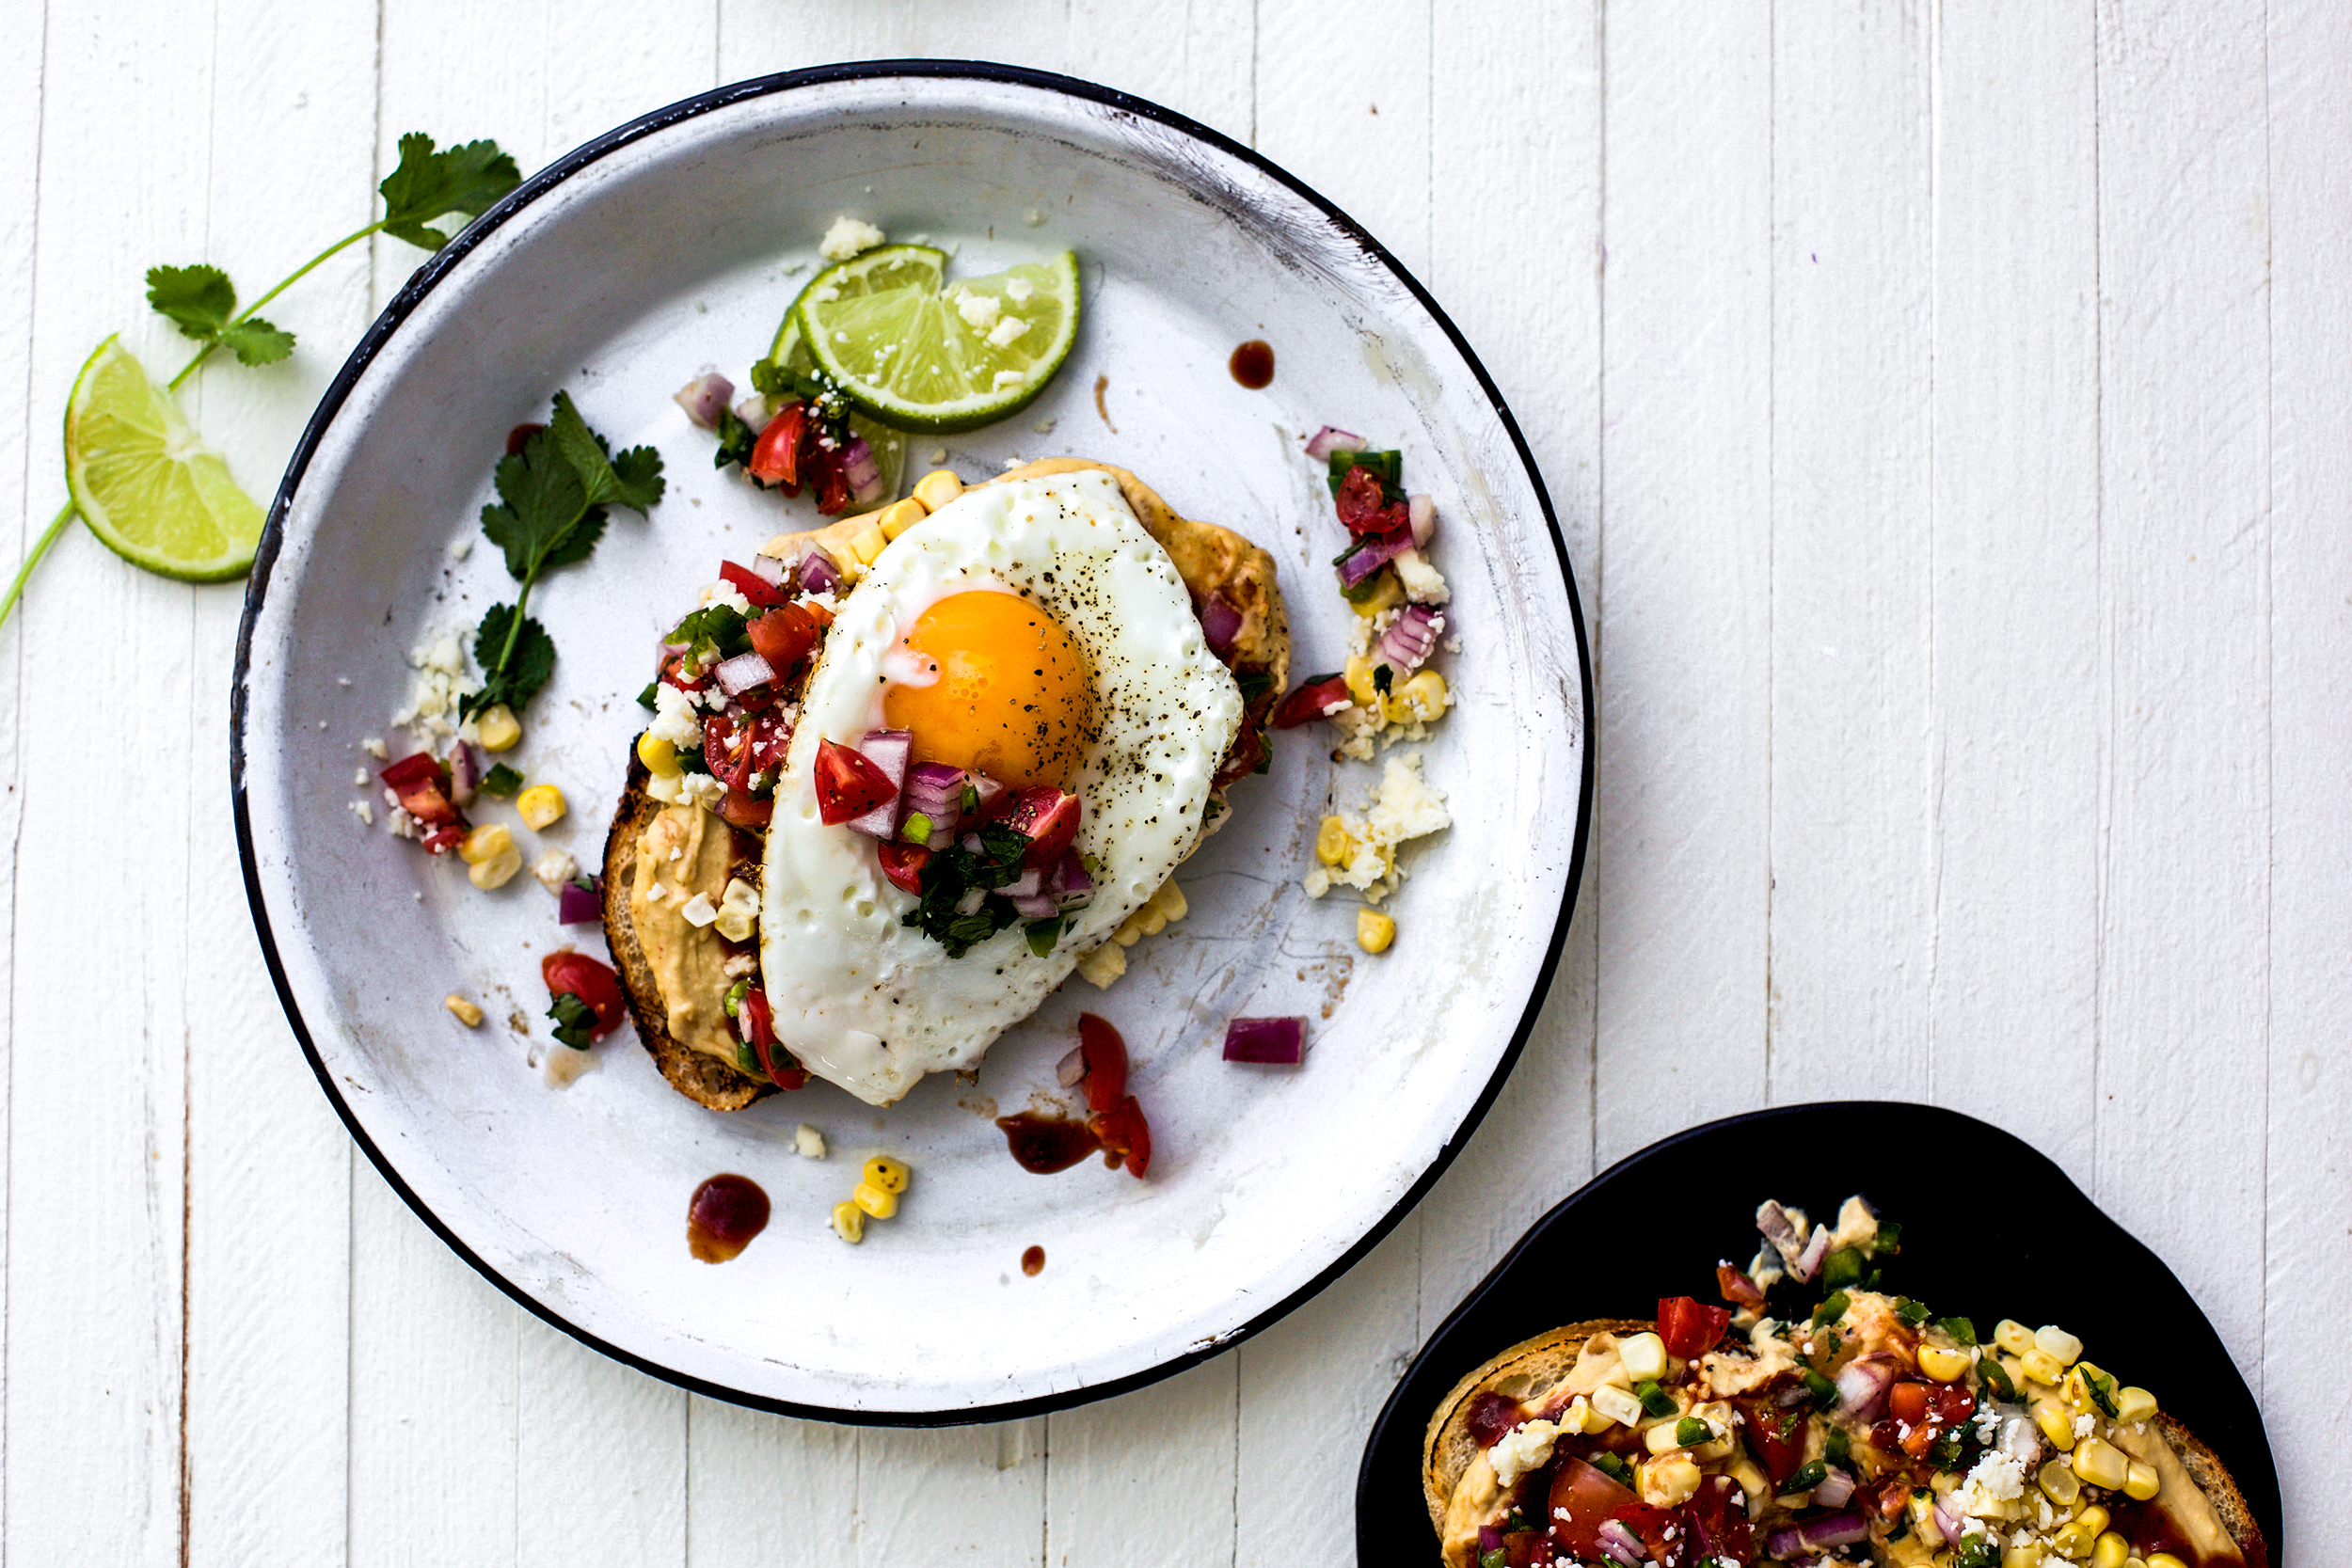 Tex-Mex BBQ Hummus Toast with Fried Egg